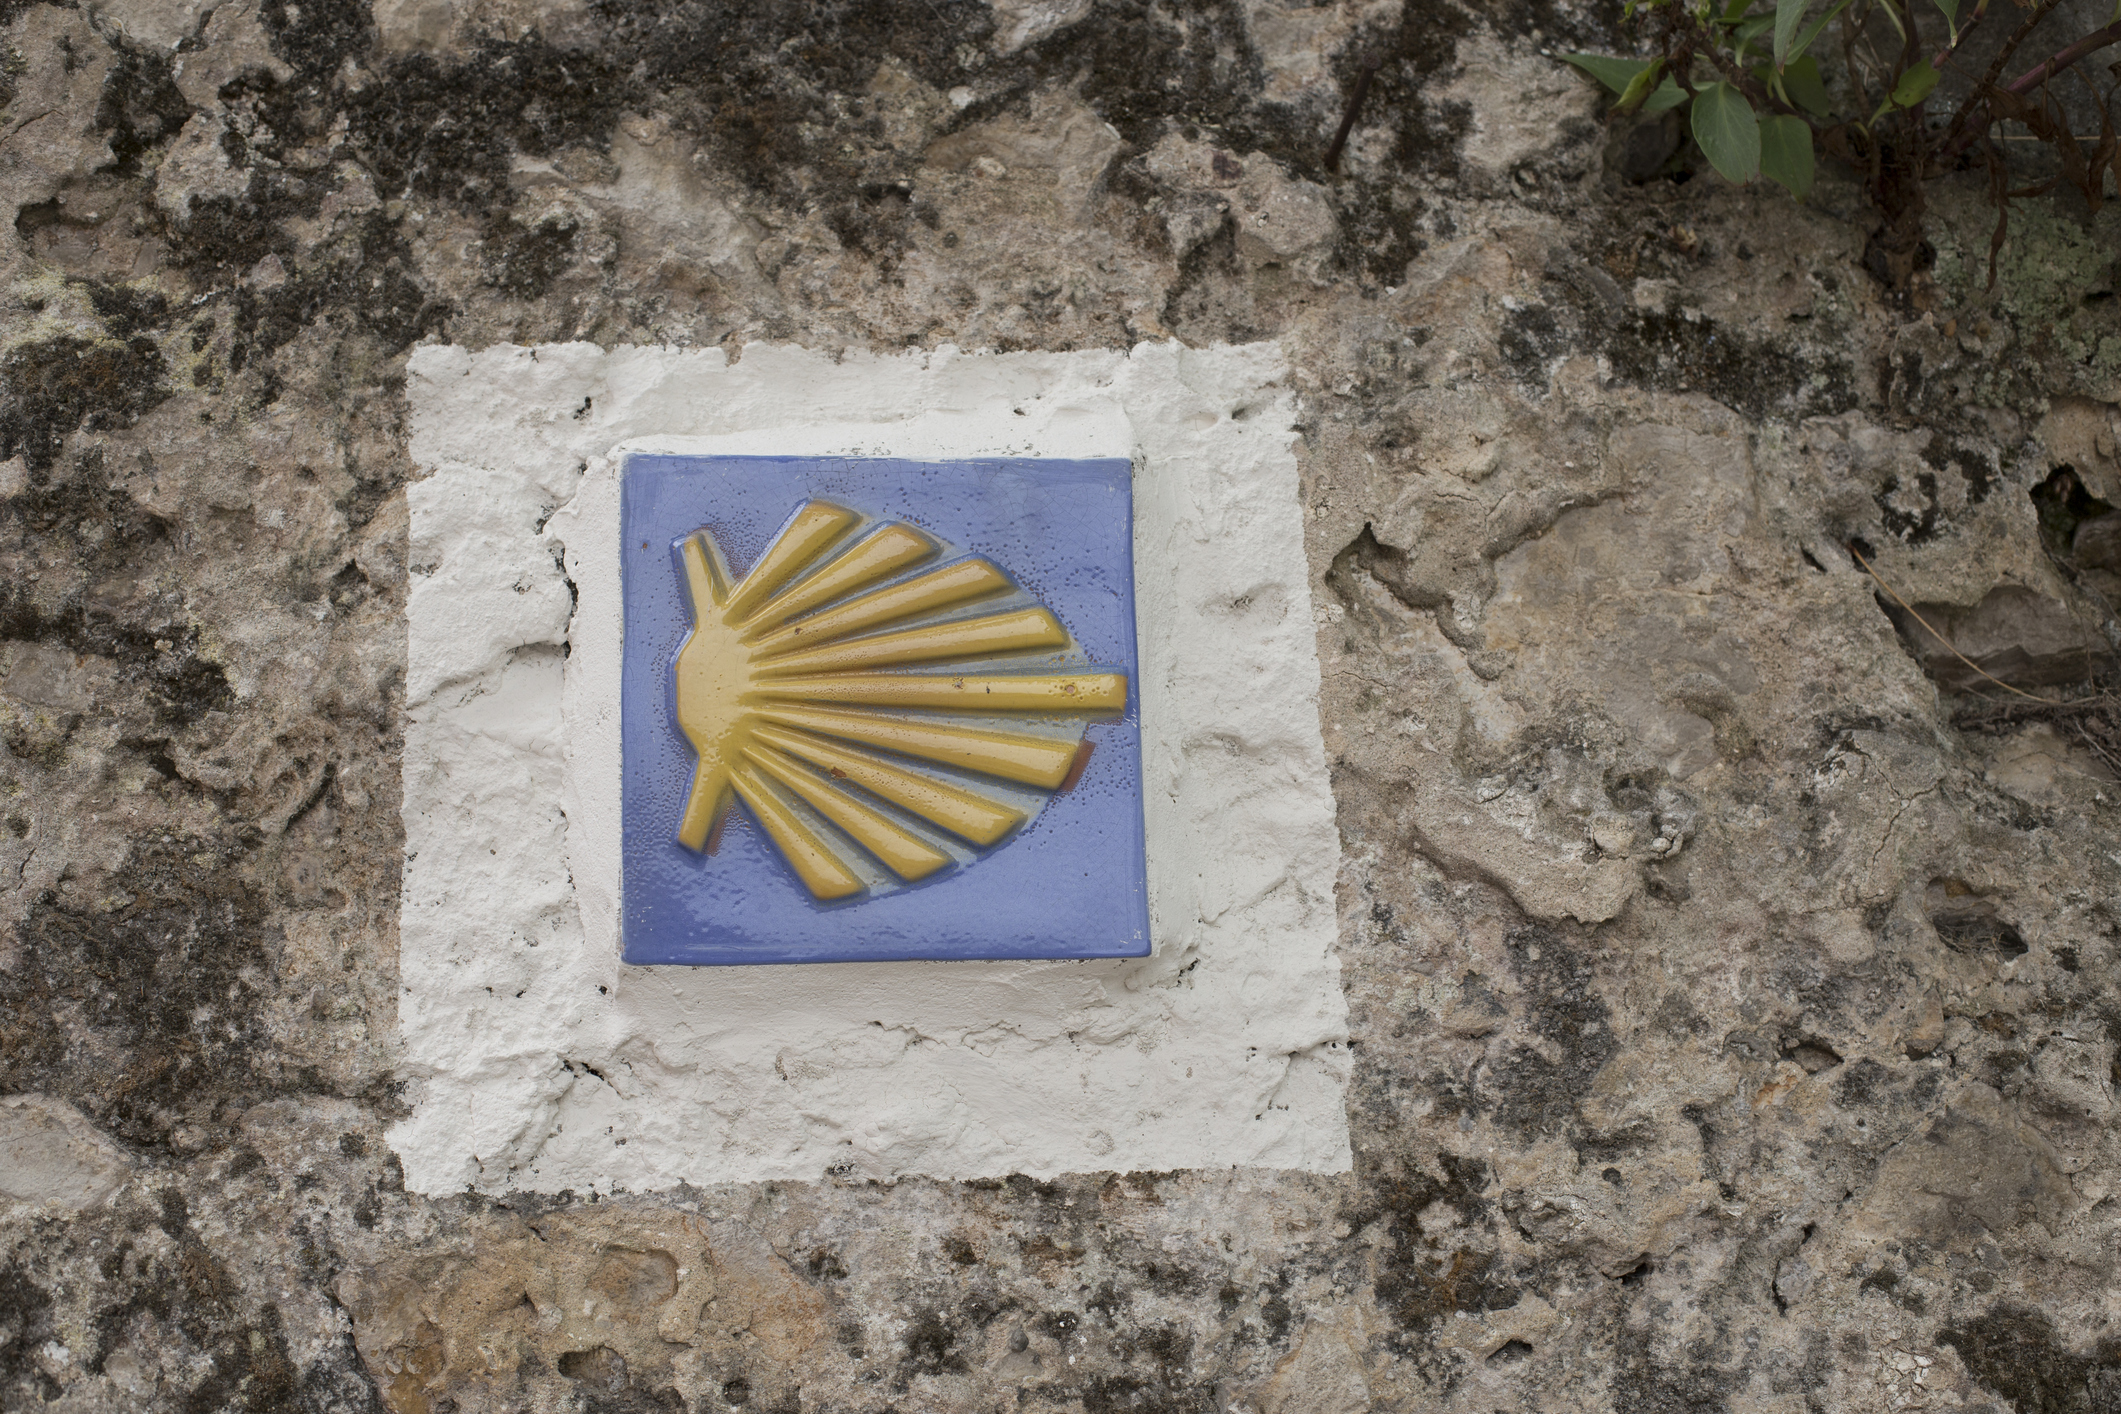 A shell sign pointing the way on the Santiago de Compostela. Image: Paula Sierra